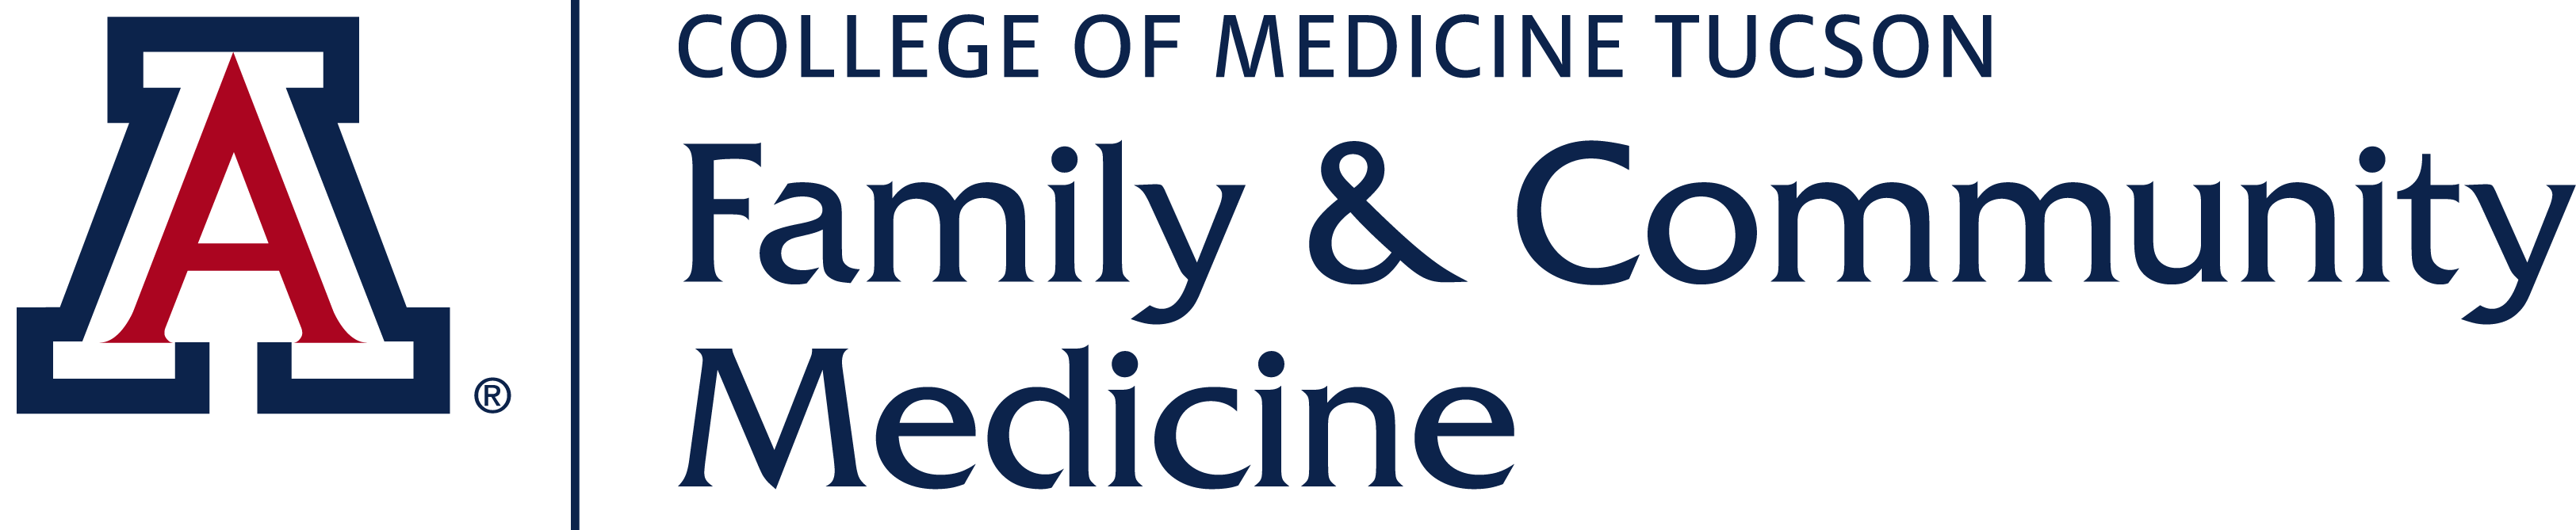 UA College of Medicine, Family & Community Medicine